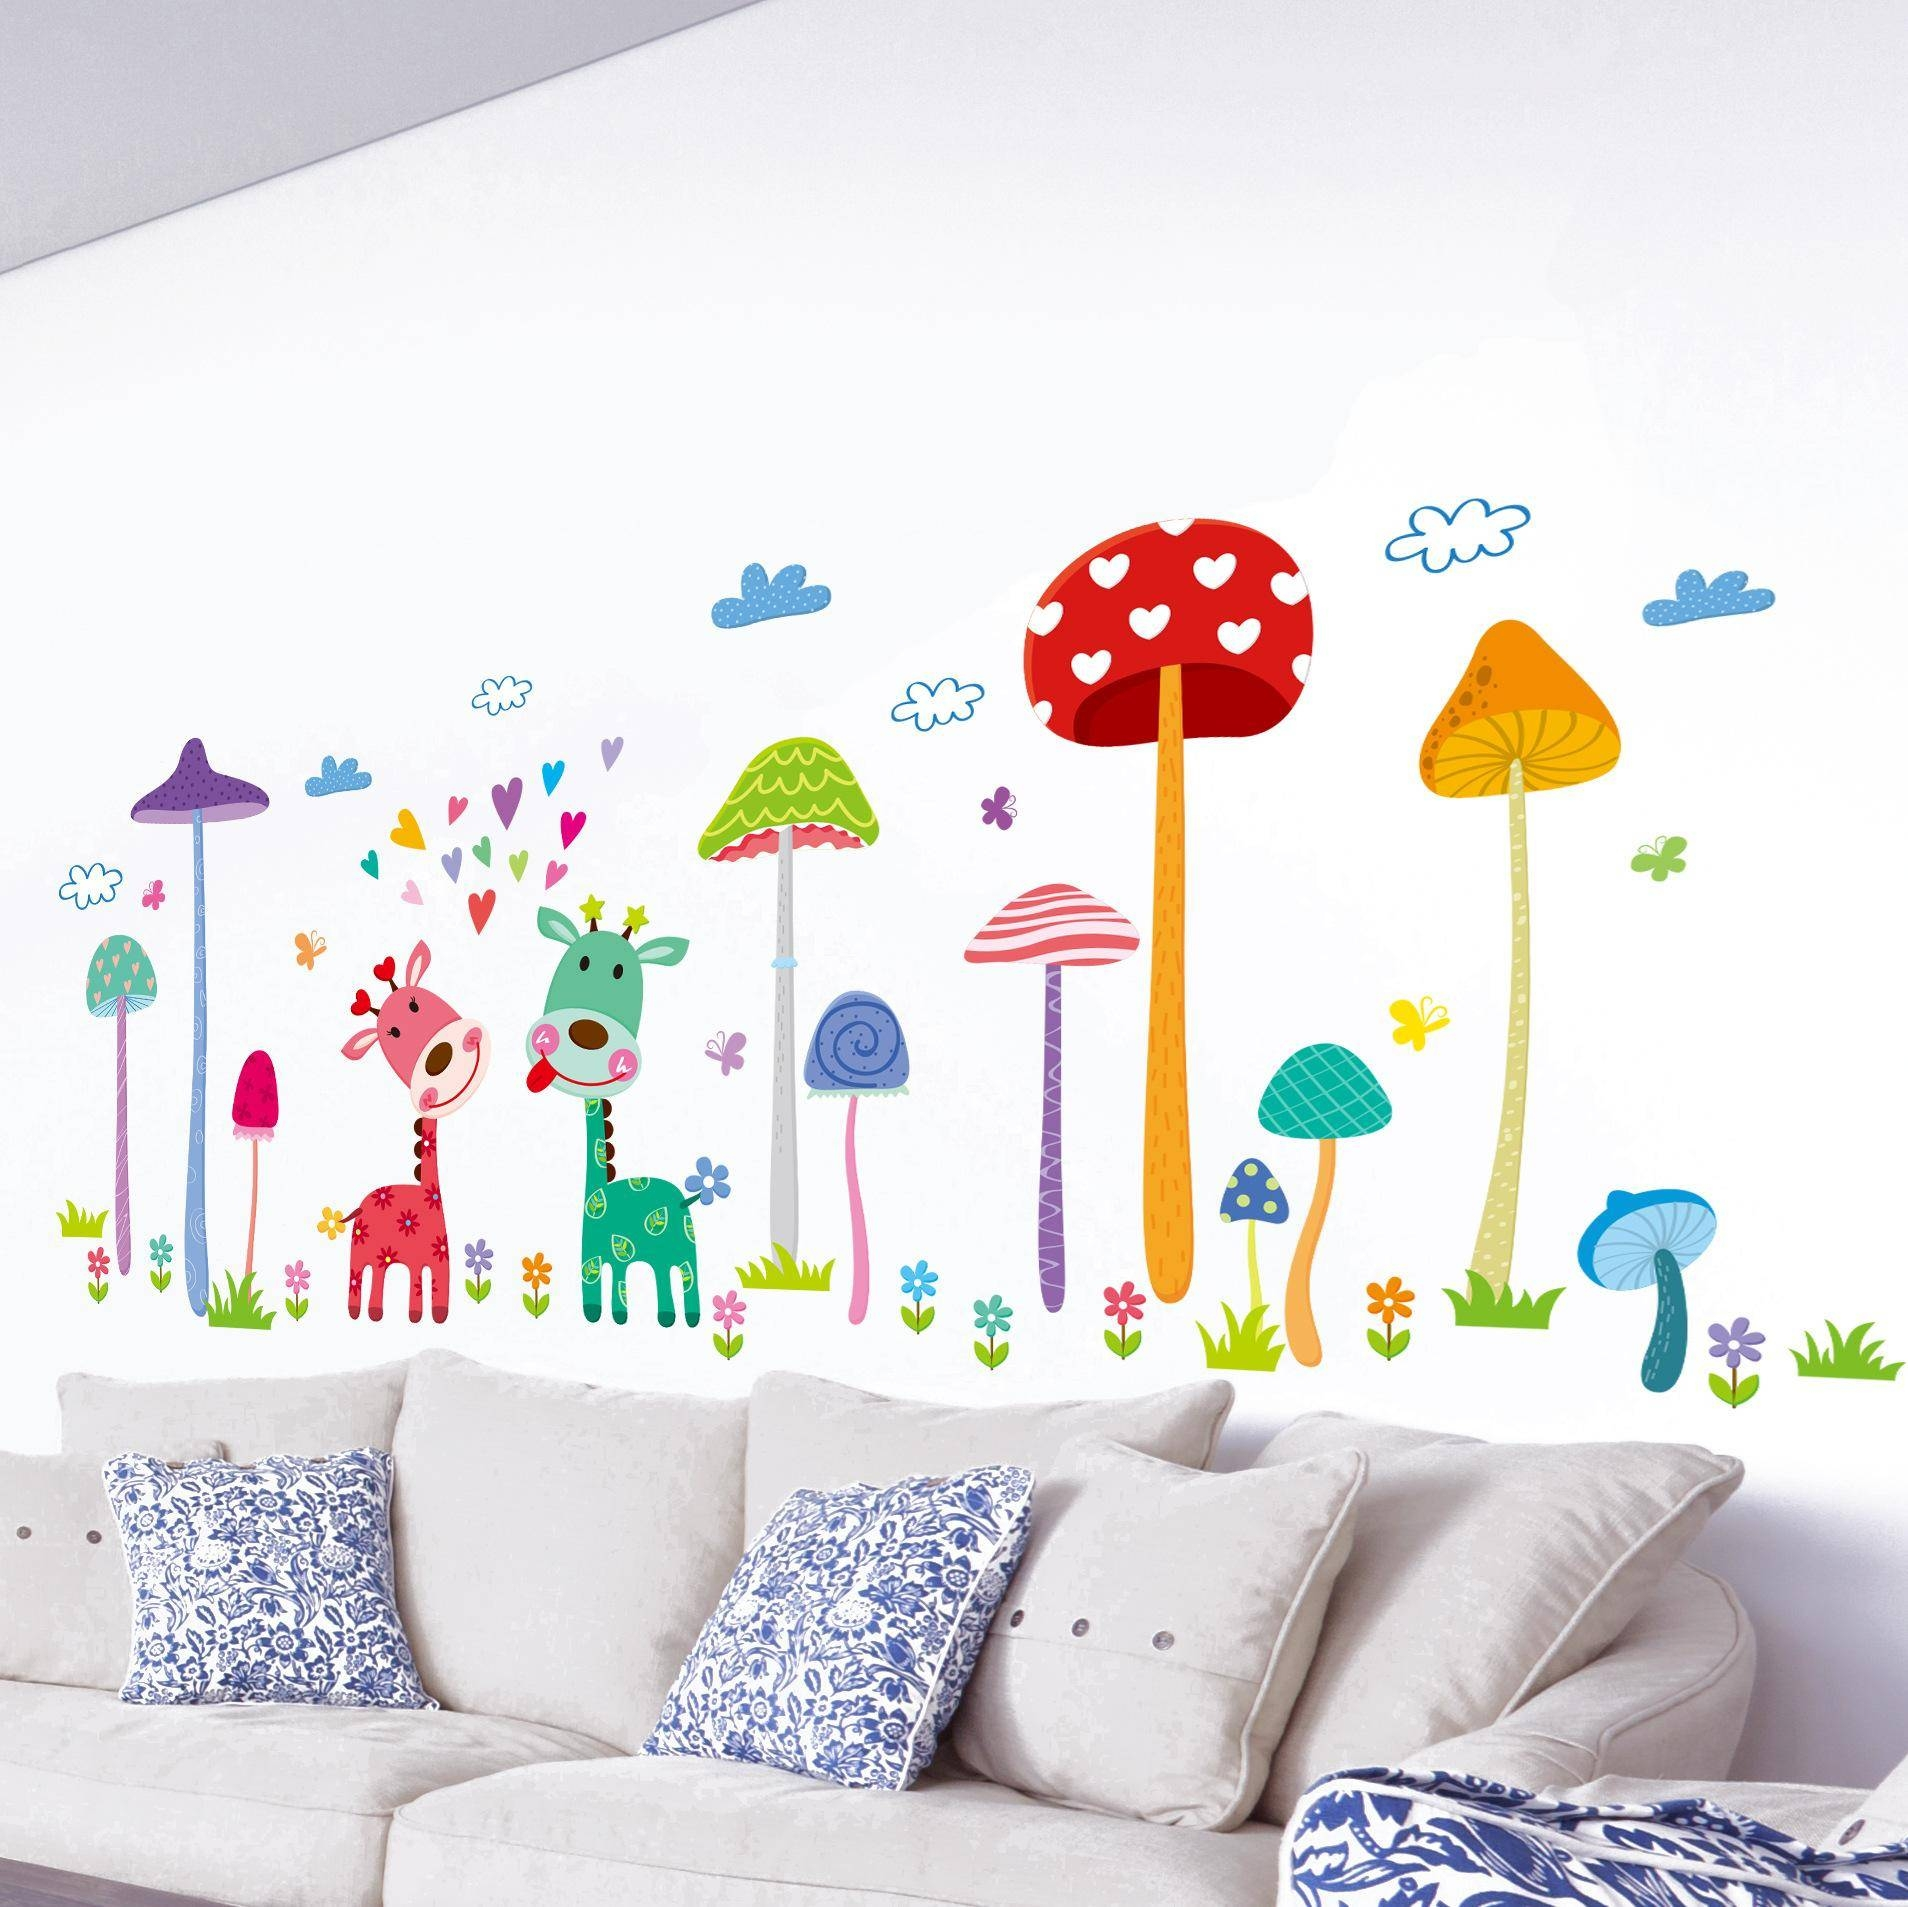 Forest Mushroom Deer Home Wall Art Mural Decor Kids Babies Room Throughout Newest Wall Art Stickers For Childrens Rooms (View 9 of 20)